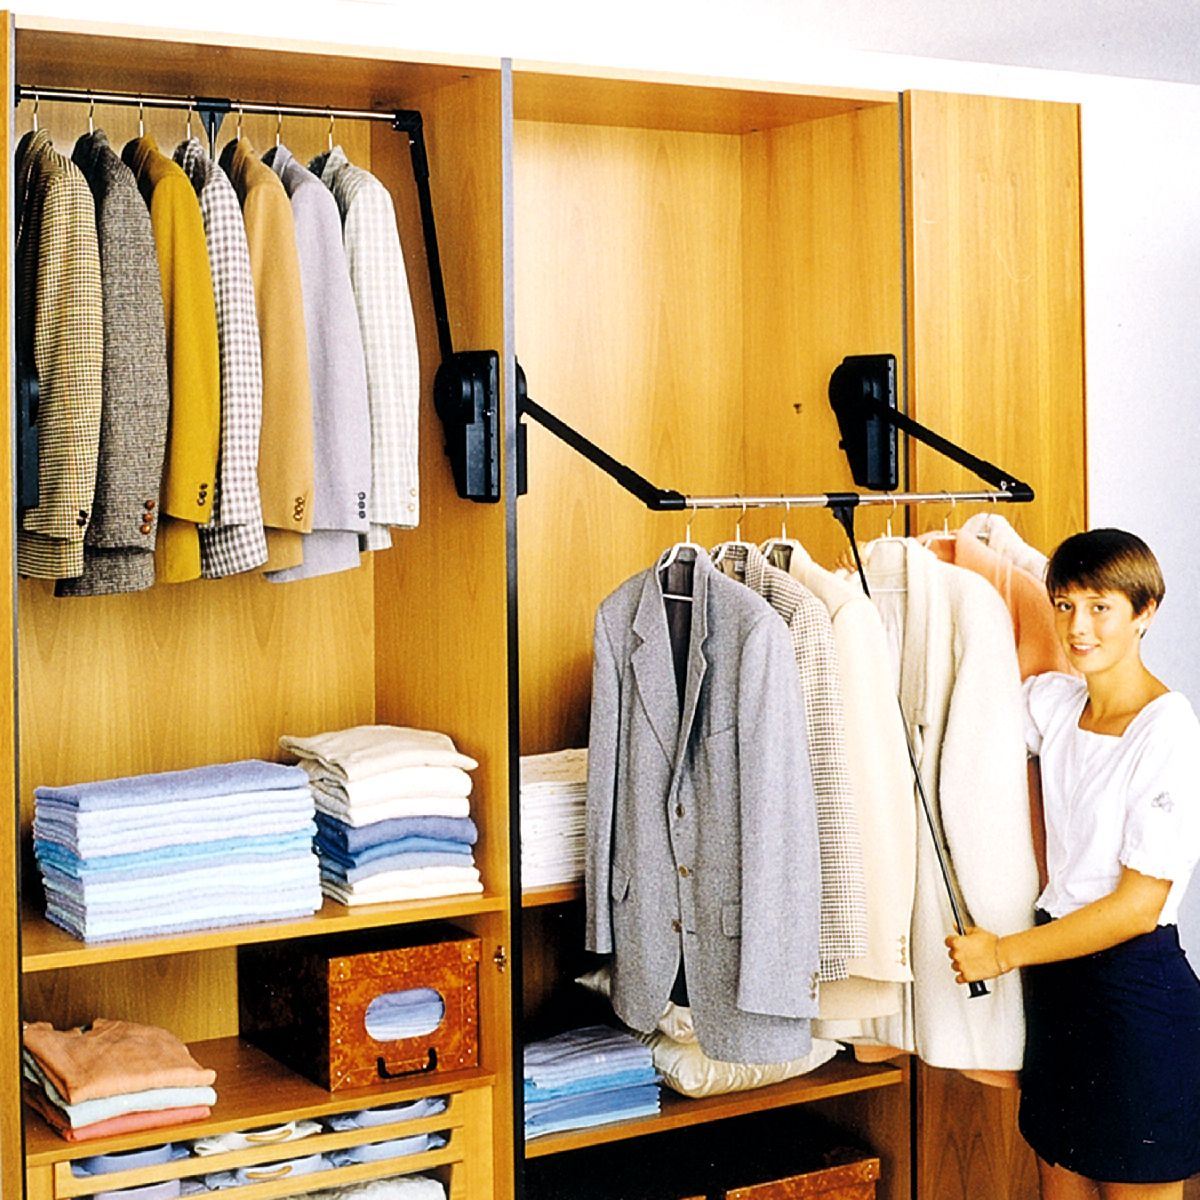 h system closet pull rod a x shelf d wall w cabinet p out large in rev organizers shelving down